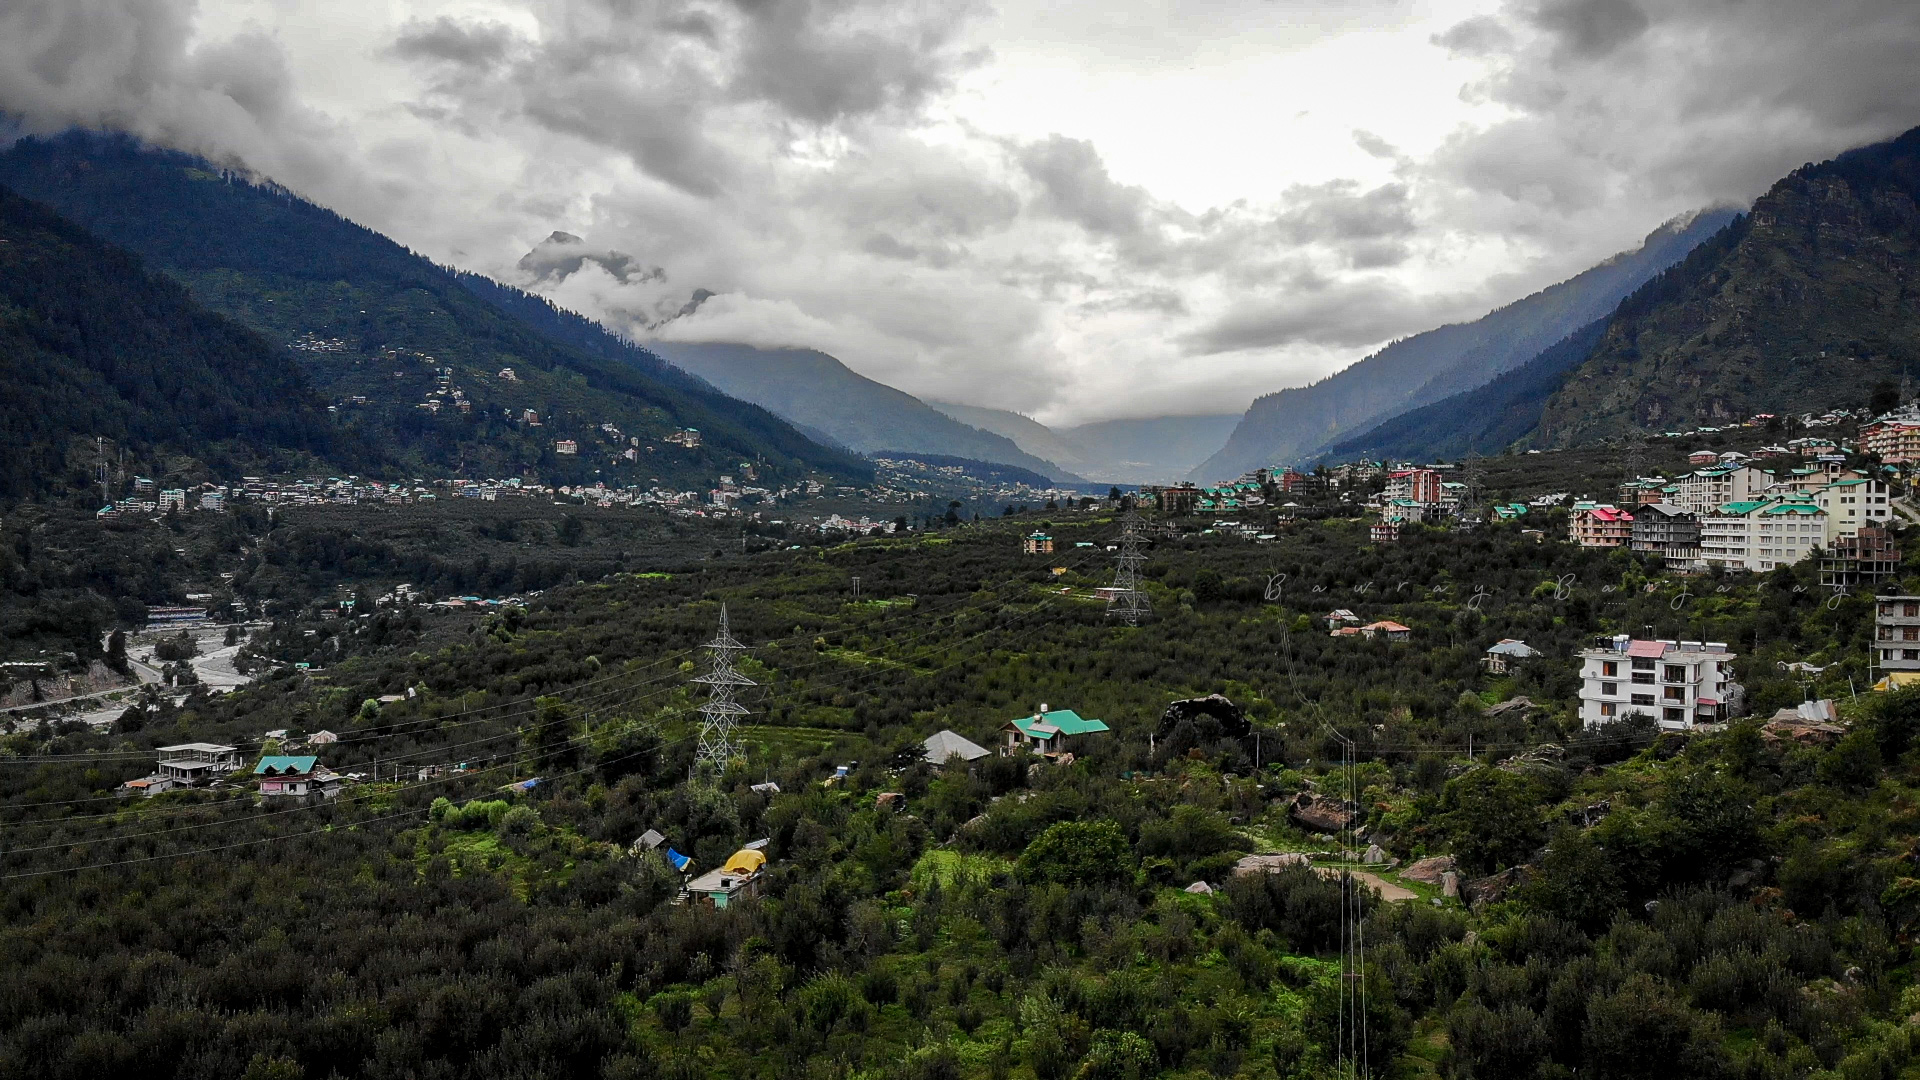 View from the Lagom Homestay in Manali